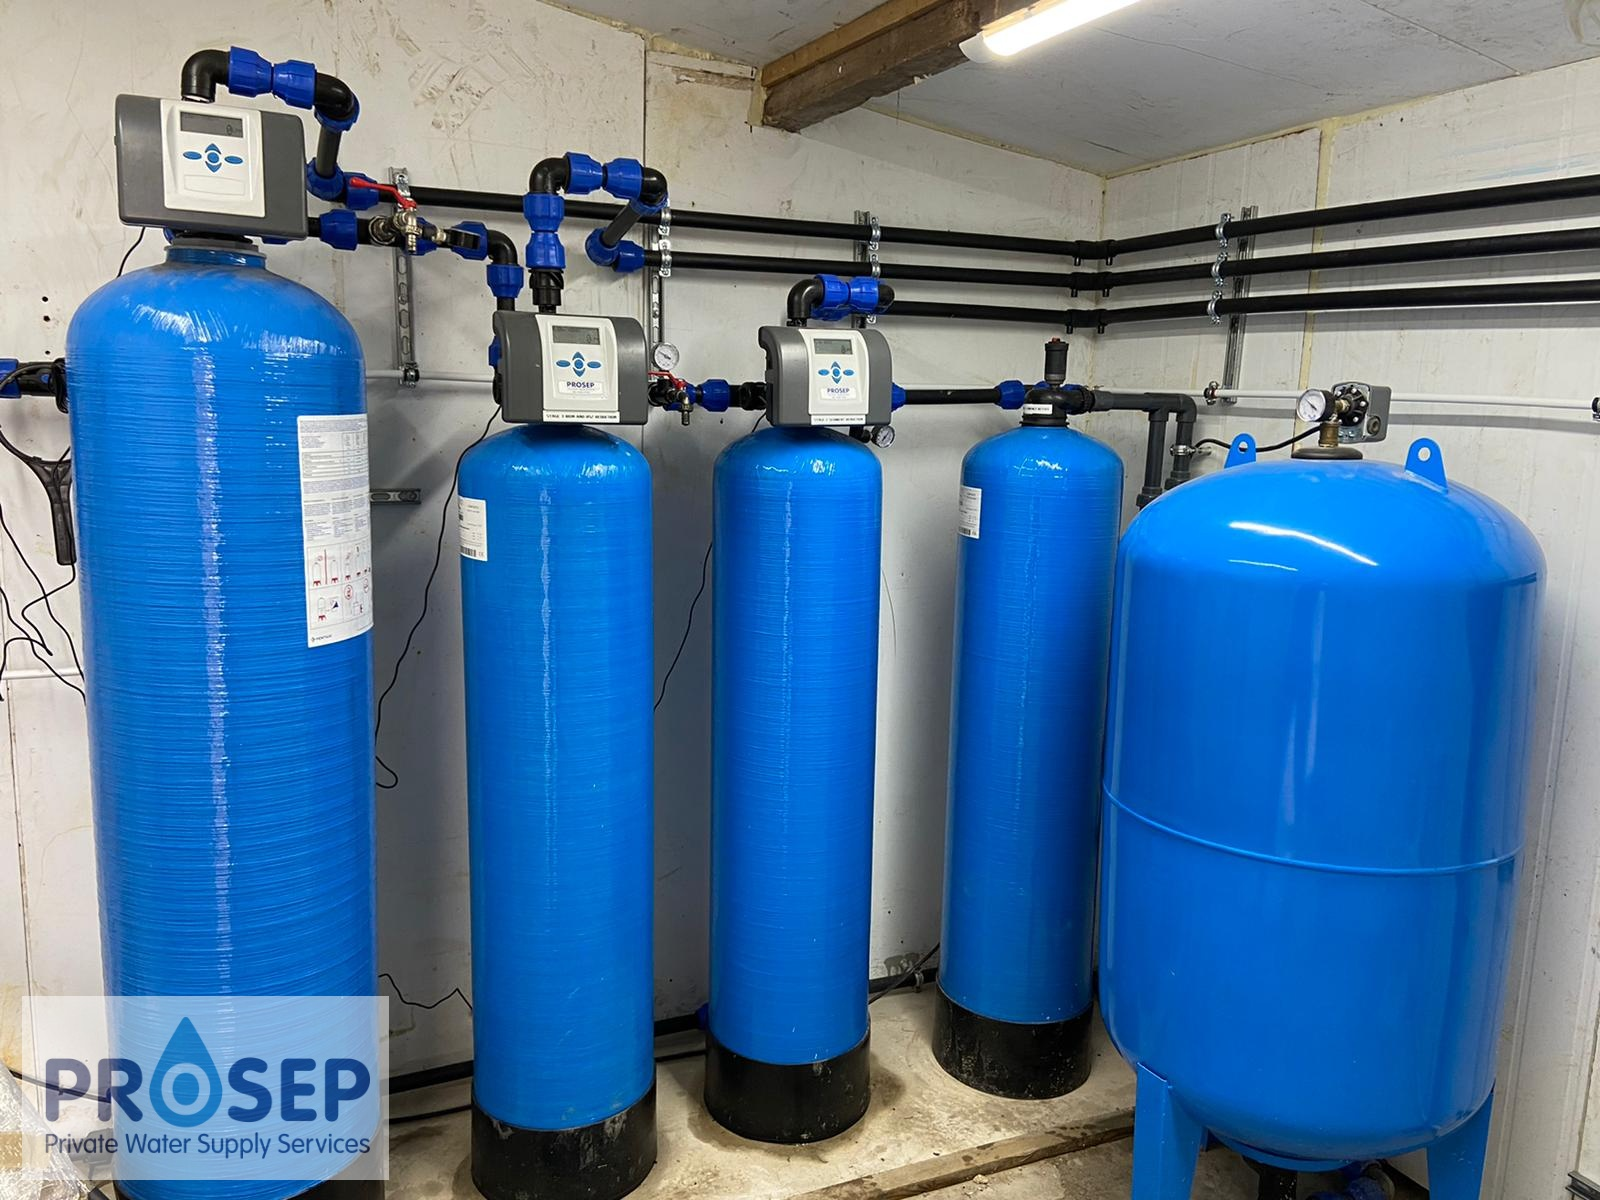 New water filtration system installation for a new build